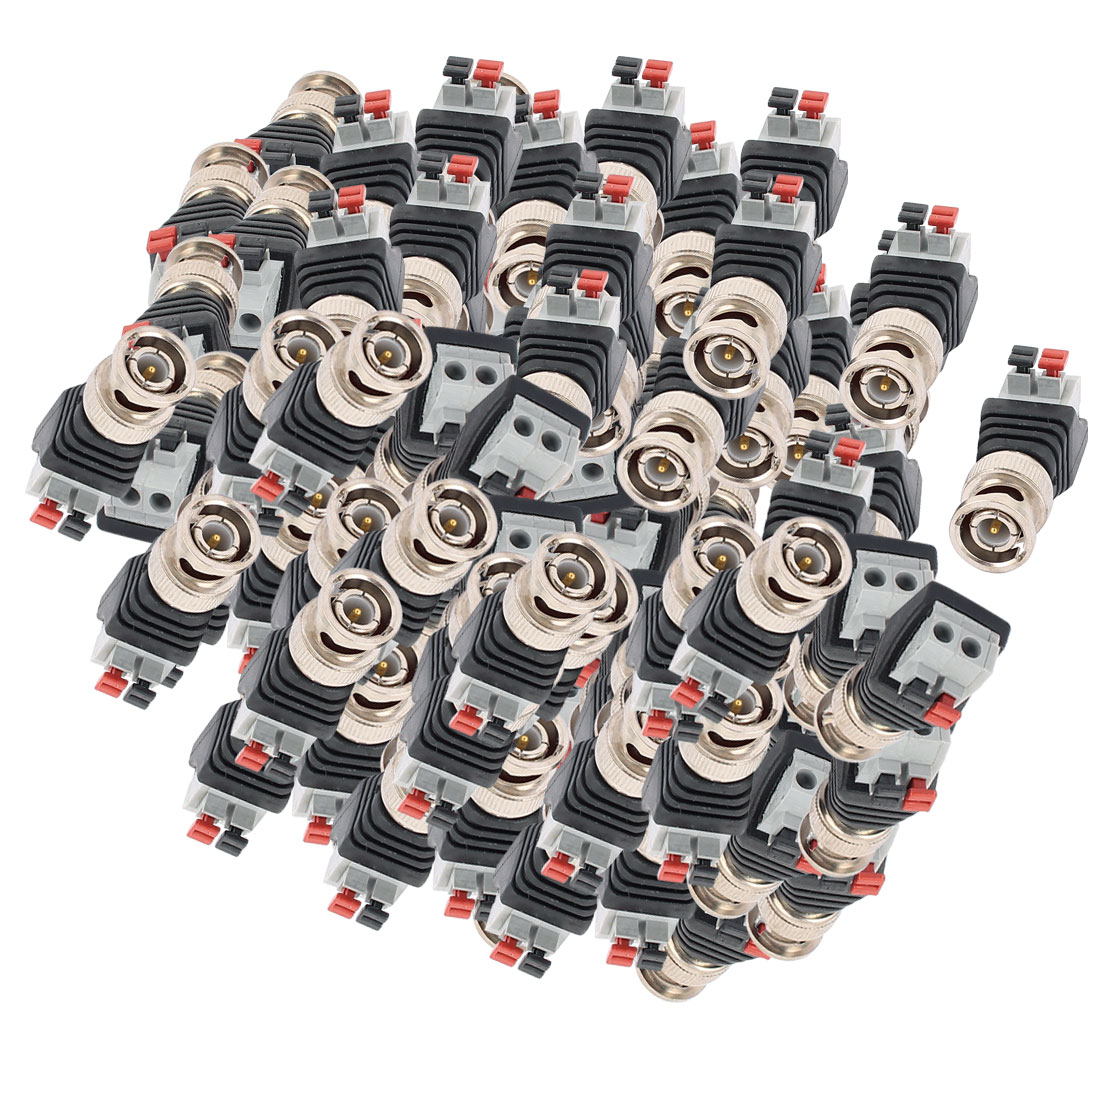 100 Pcs Clip Type Terminal Block Coaxial Cat5 to BNC Male Jack Video Balun Connector